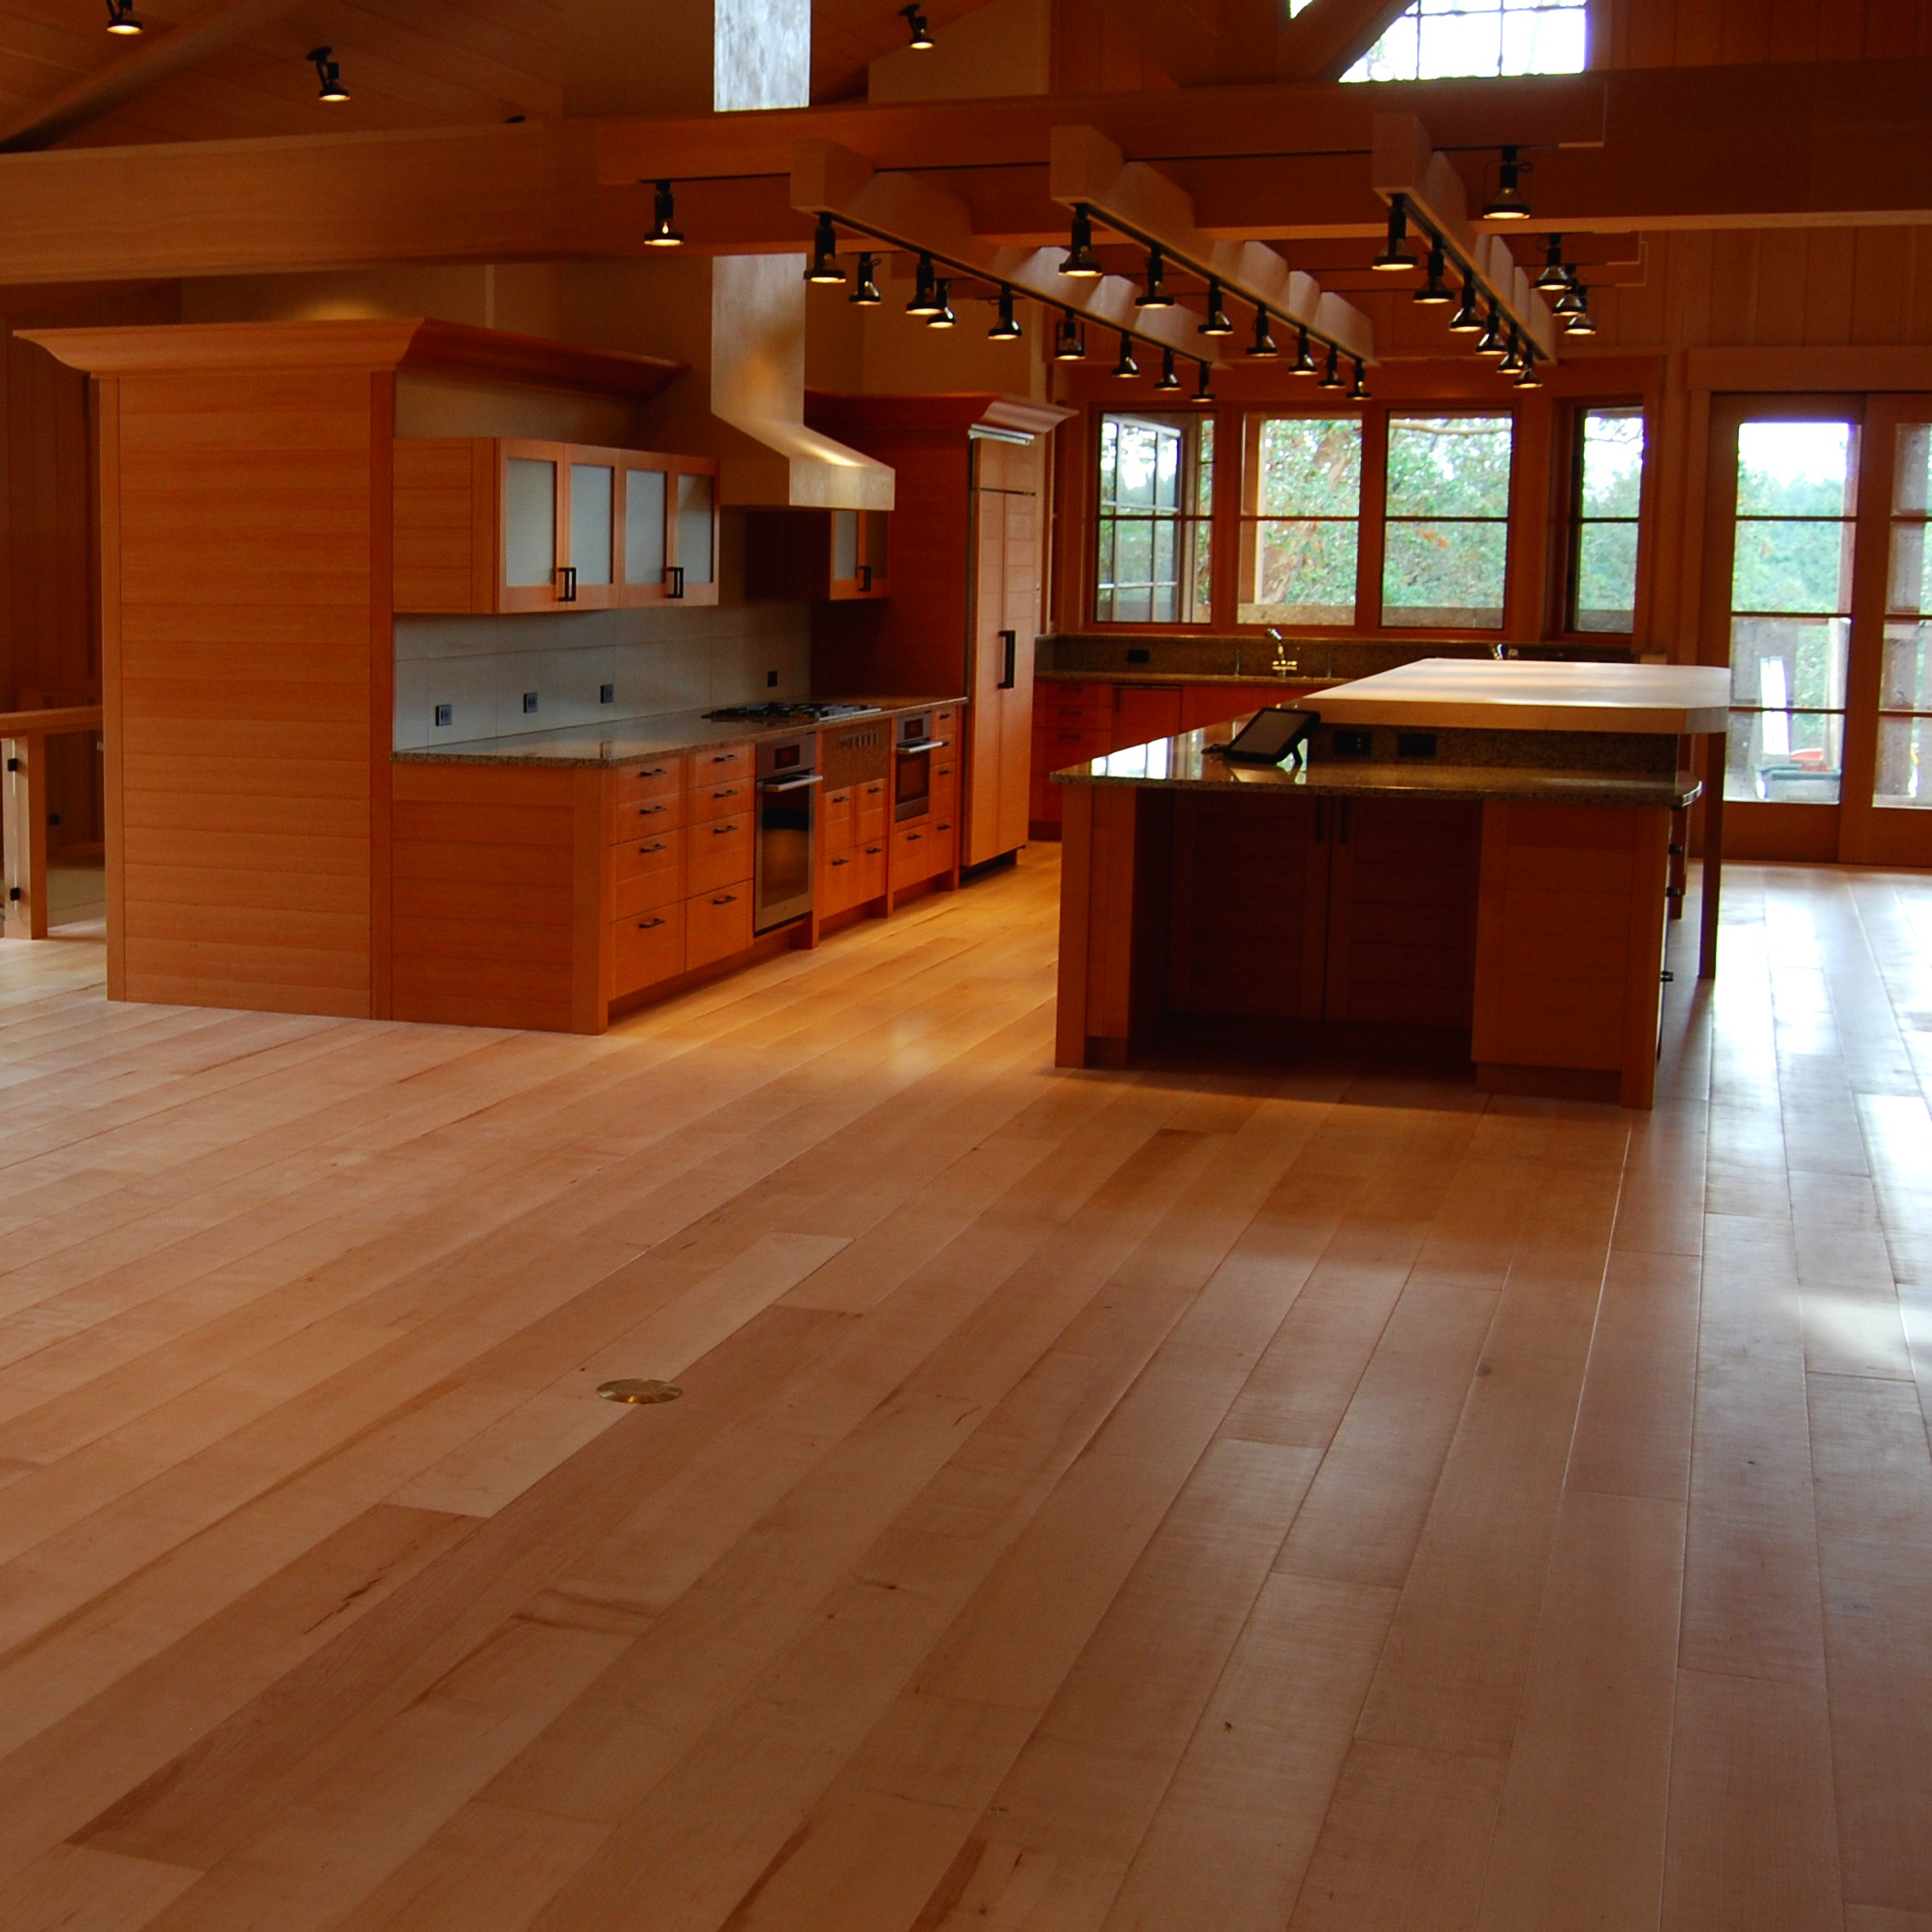 INSTALLATION - Installing hardwood floors in your home is a large investment. We install with an eye for quality and apply finish that will last for years. We have the knowledge and experience to help you choose between the many choices in wood flooring to craft your perfect living space.